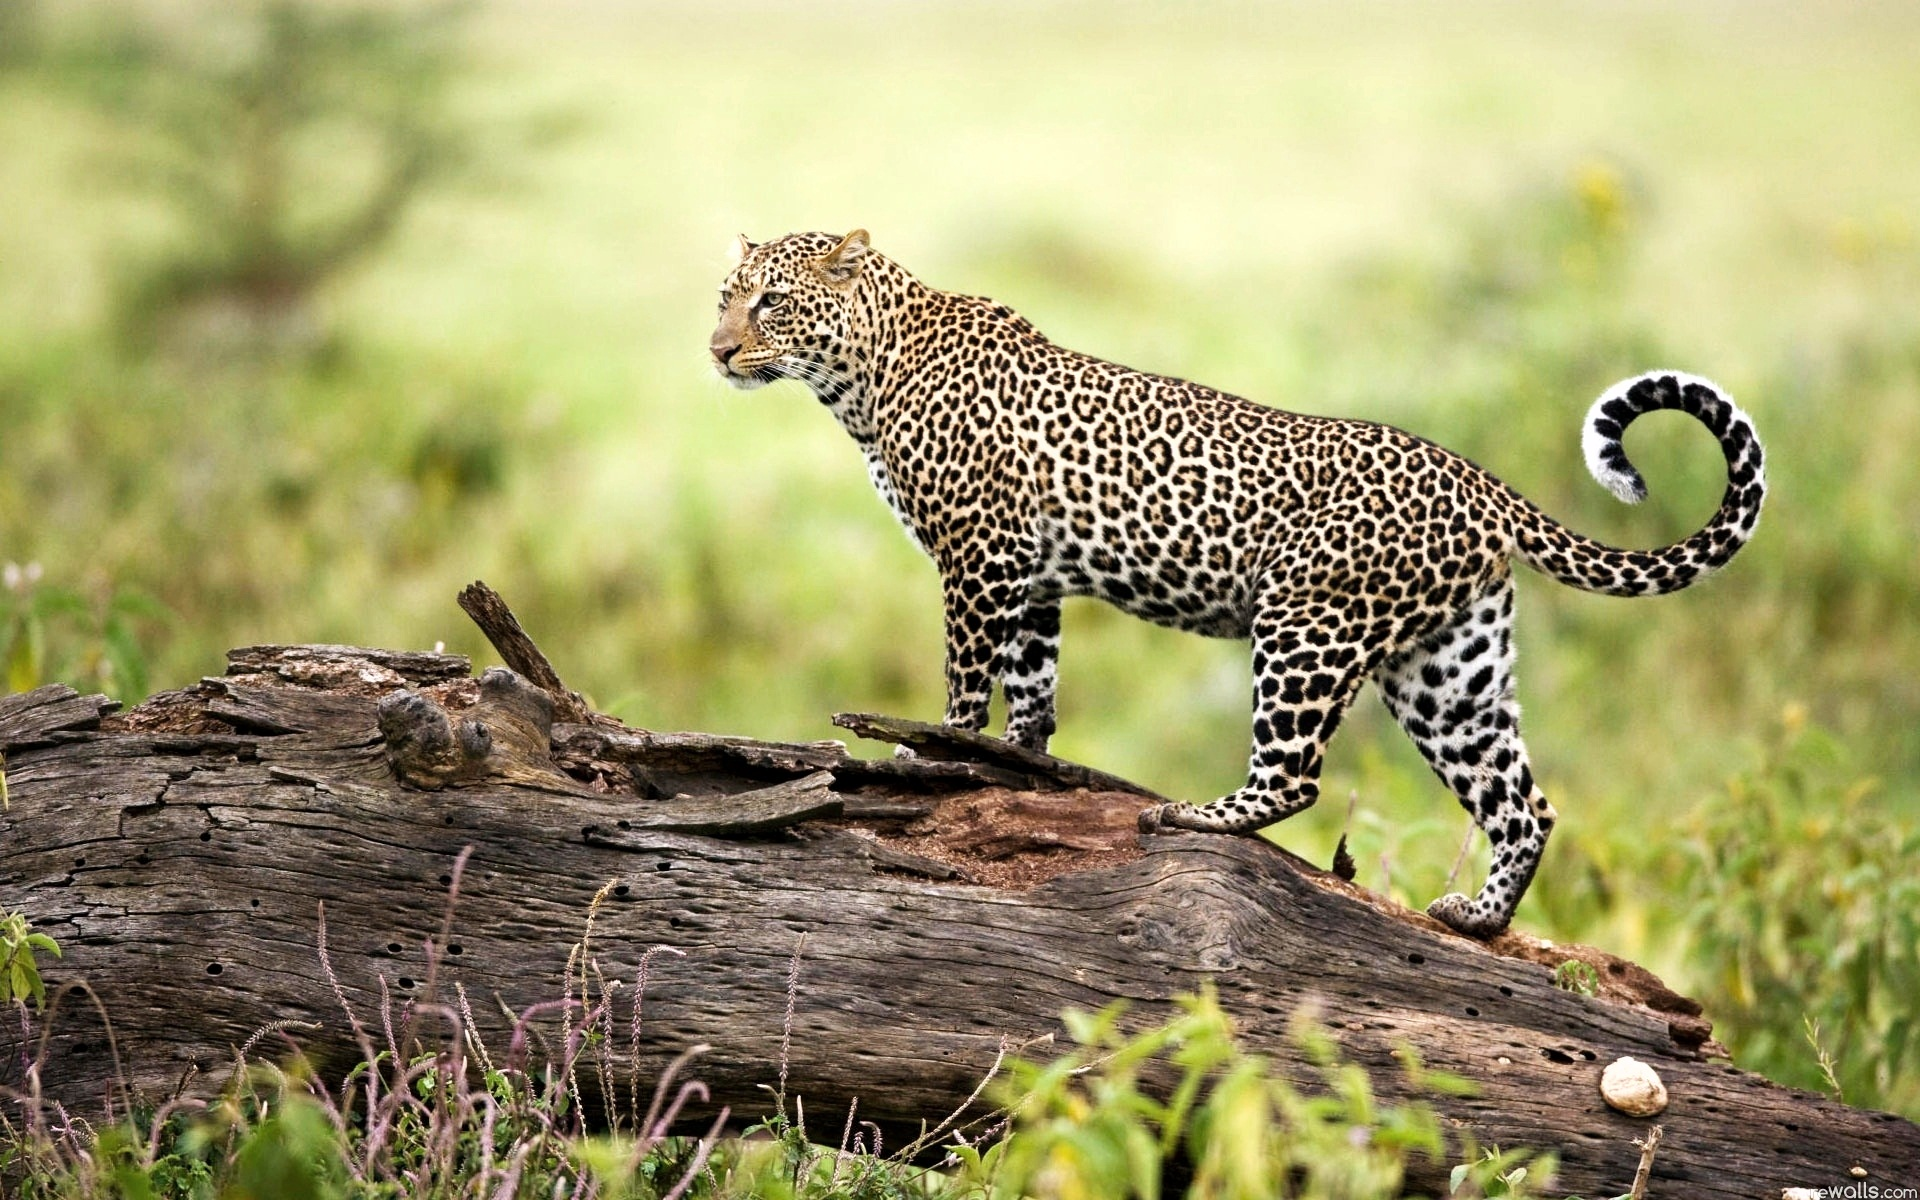 Leopard Wildlife 741.43 Kb